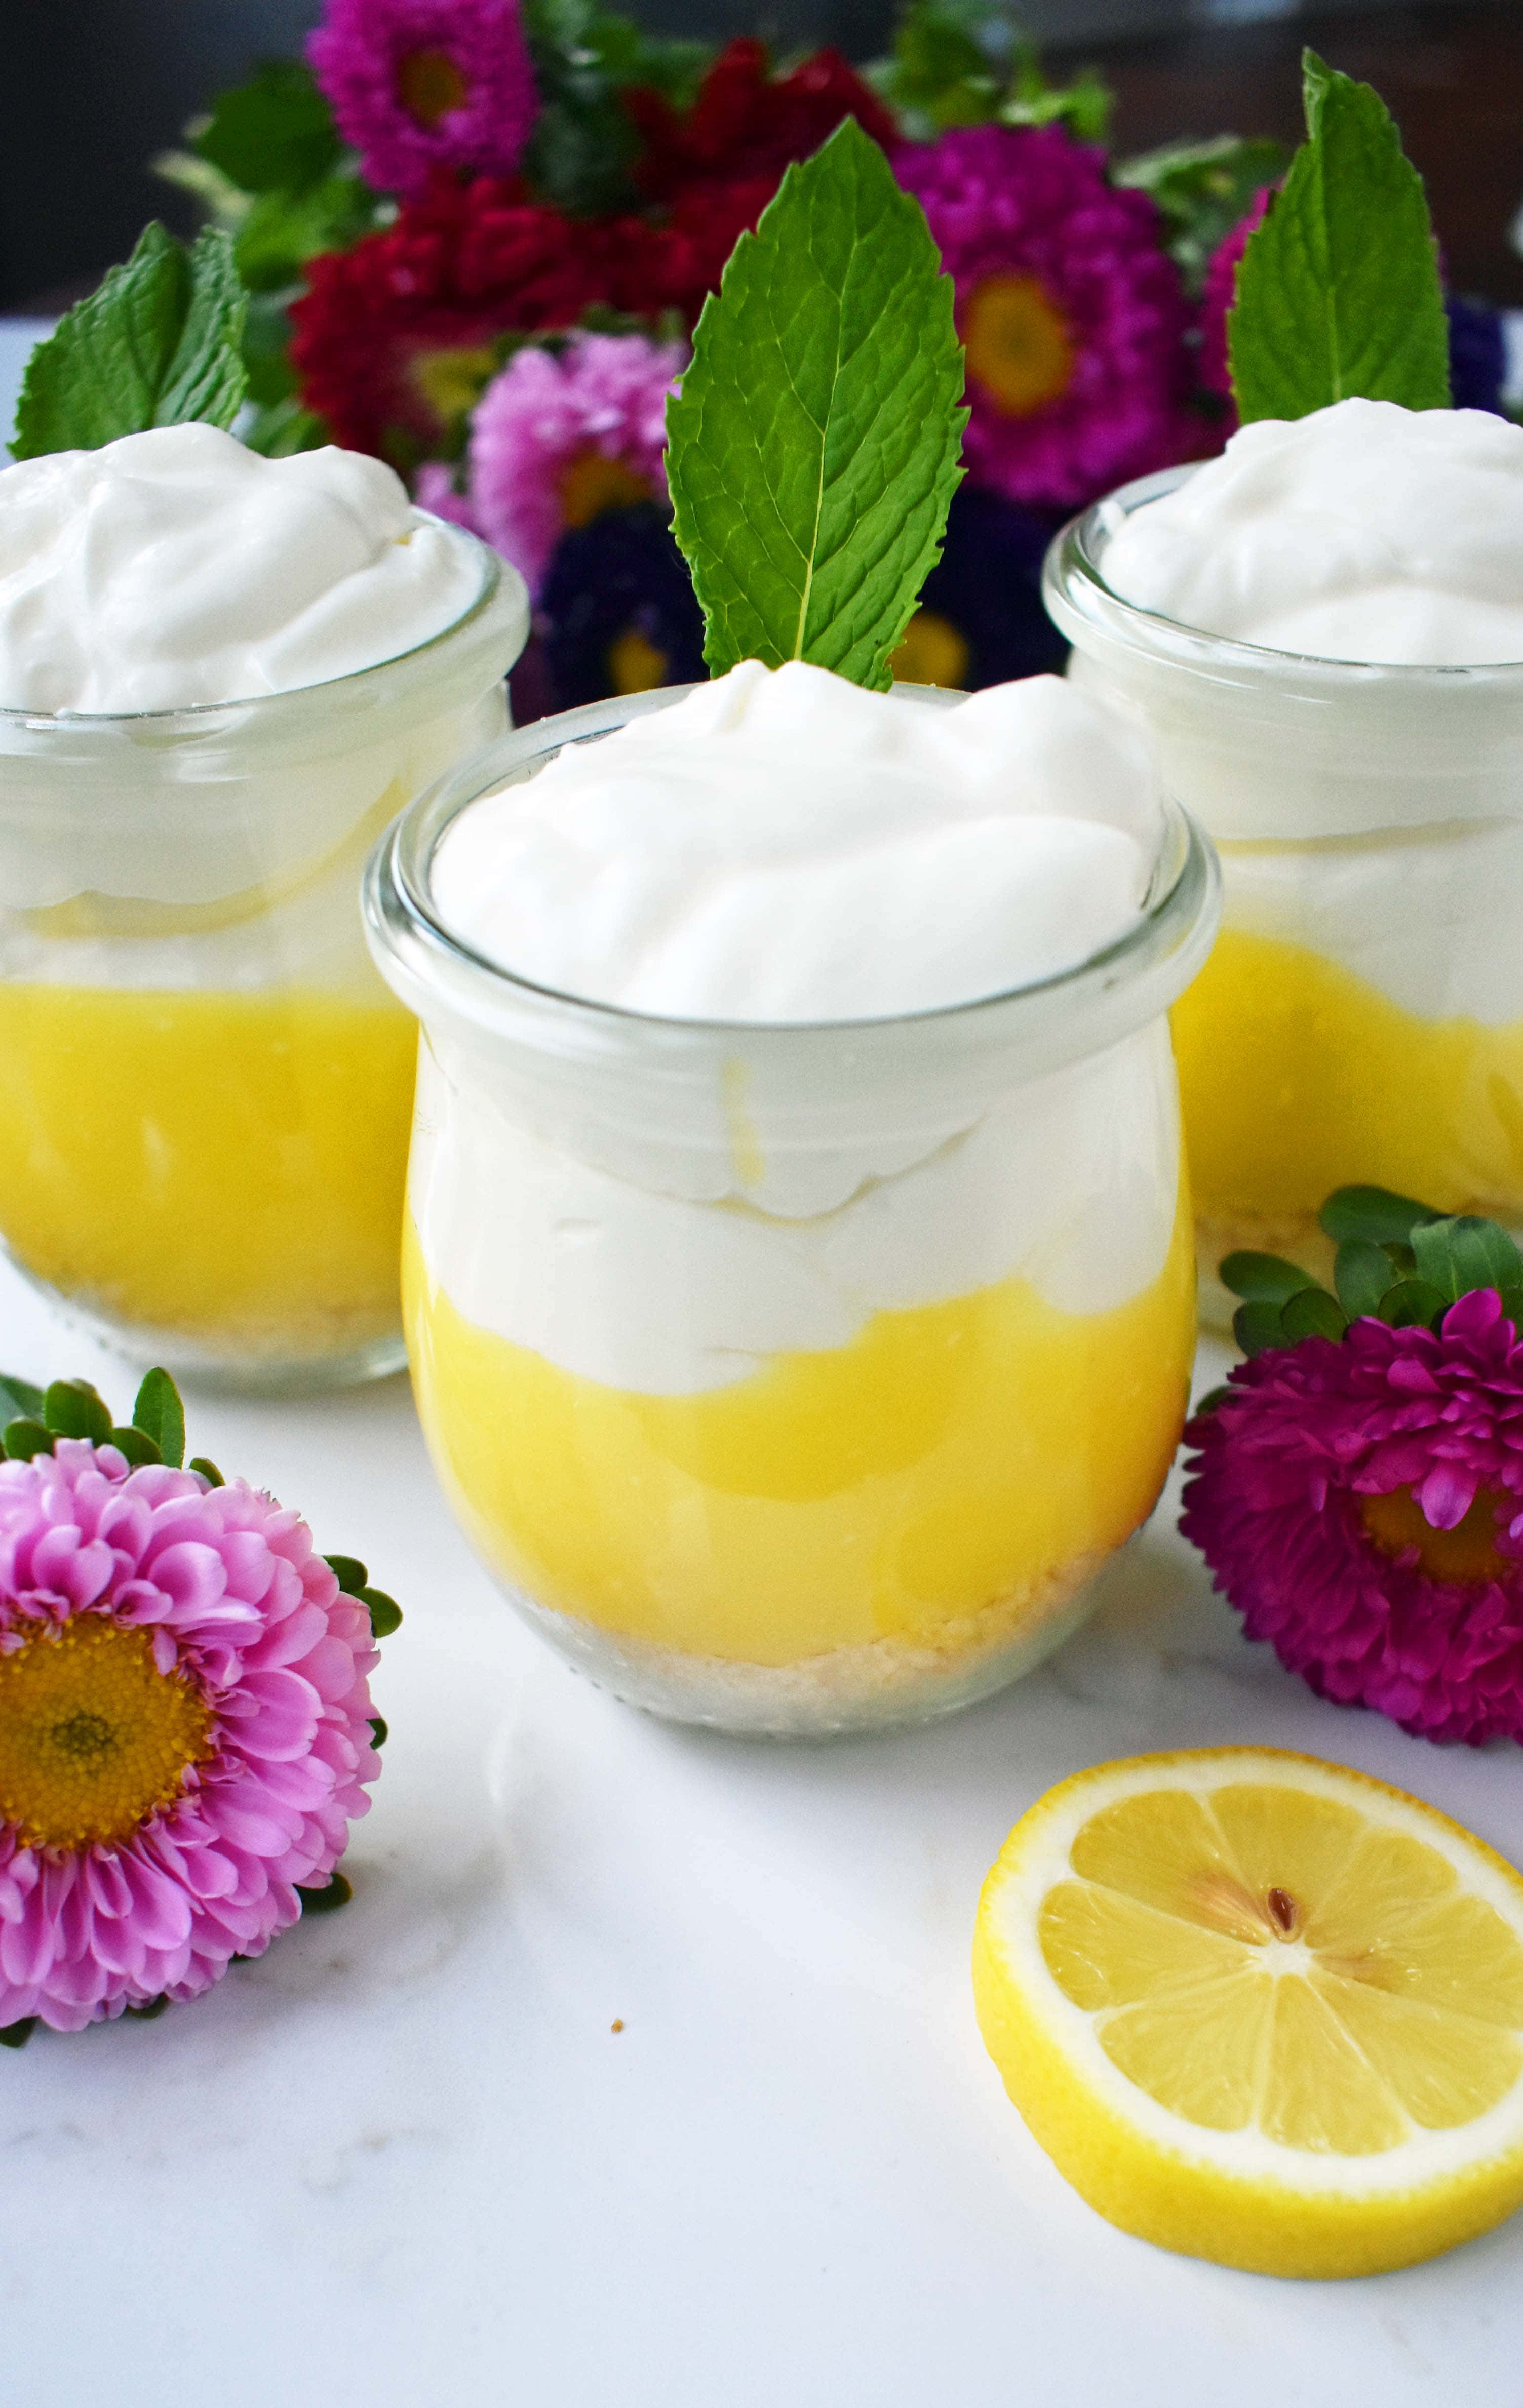 Lemon Cream Parfait Pie Jars. Homemade lemon curd layered with graham or butter cookie crust and sweetened cream cheese and whipped cream. The perfect dessert for parties, Mother's Day, Spring, or Summer parties. It's a lemon cream pie in a jar. Also, tips on how to make it into a 9 inch lemon cream pie. www.modernhoney.com